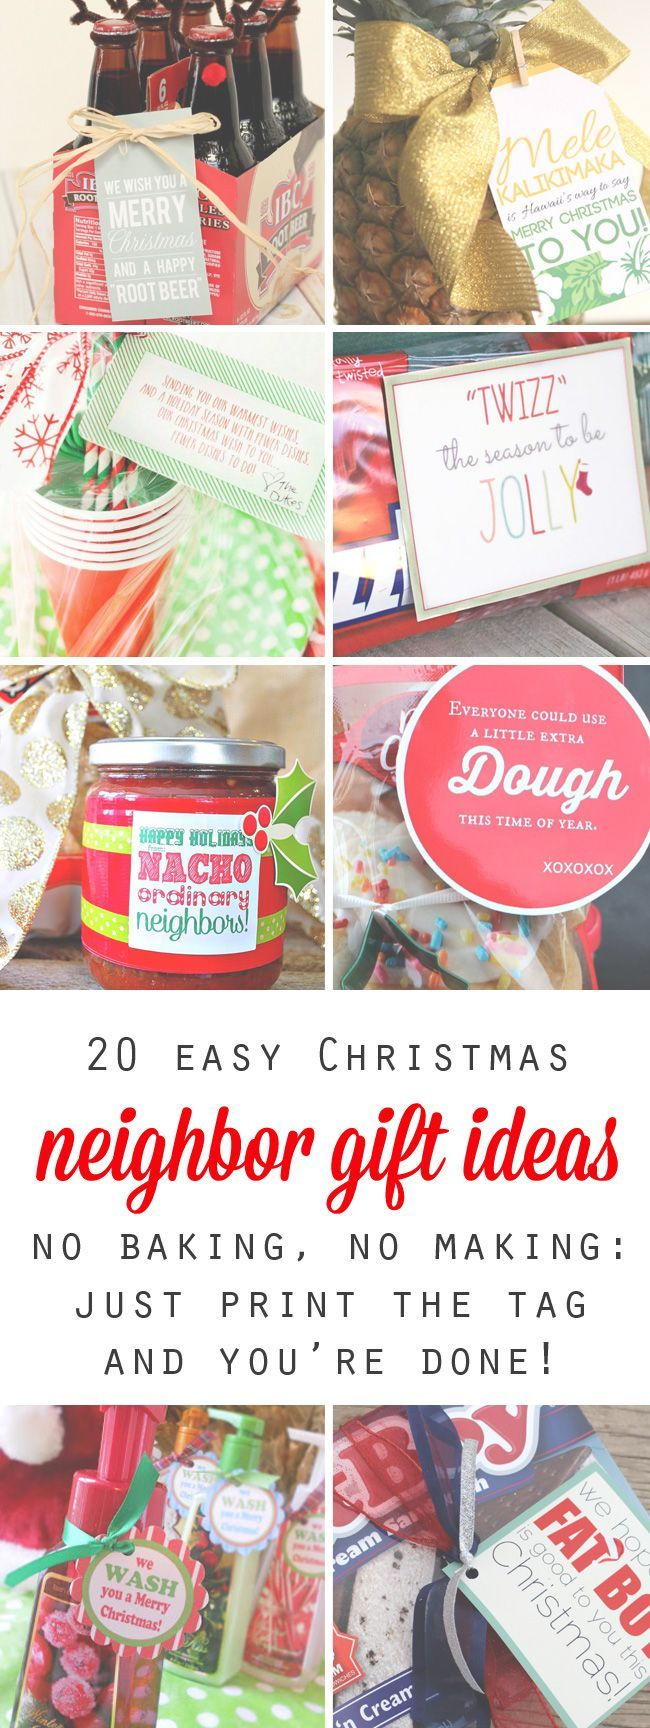 20 quick easy and cheap neighbor gift ideas for